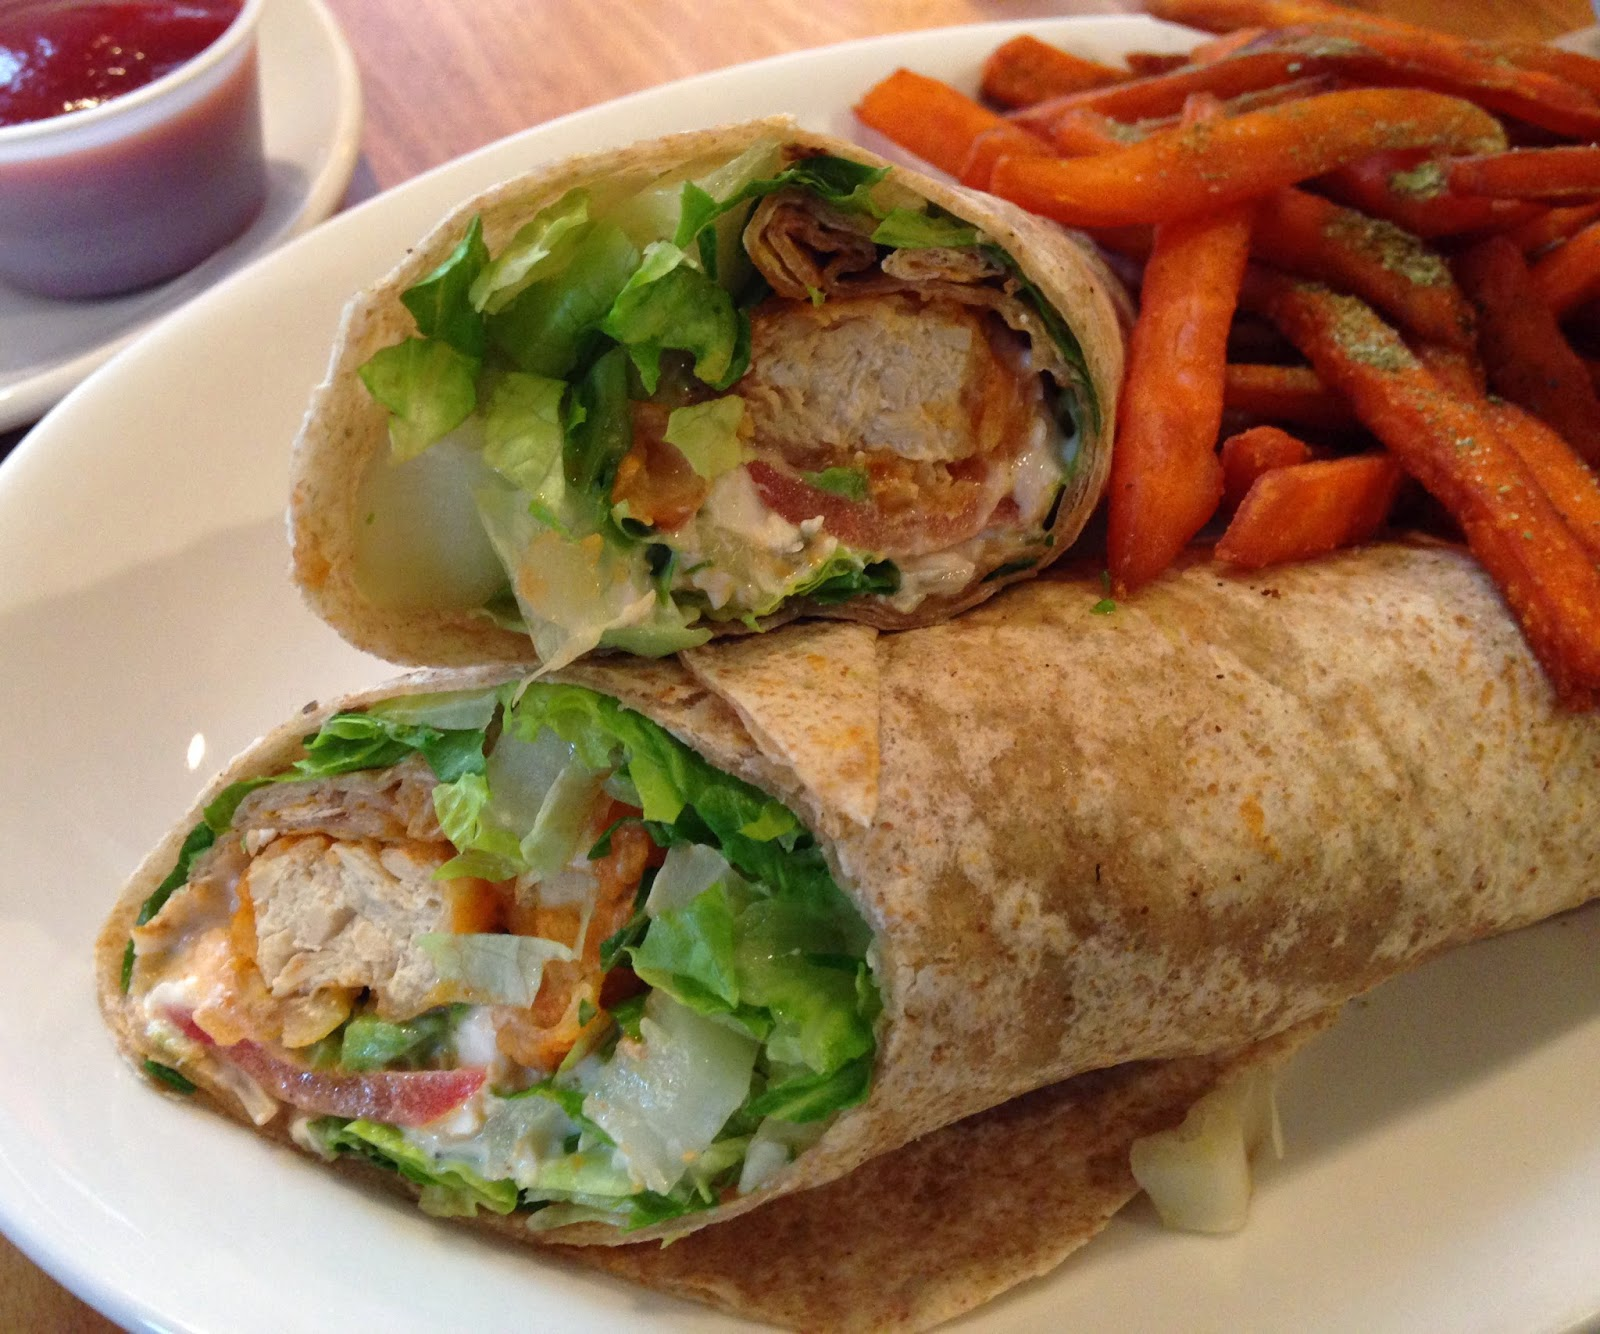 Wrap and Fries at Native Foods Cafe Chicago - Veega Vegan